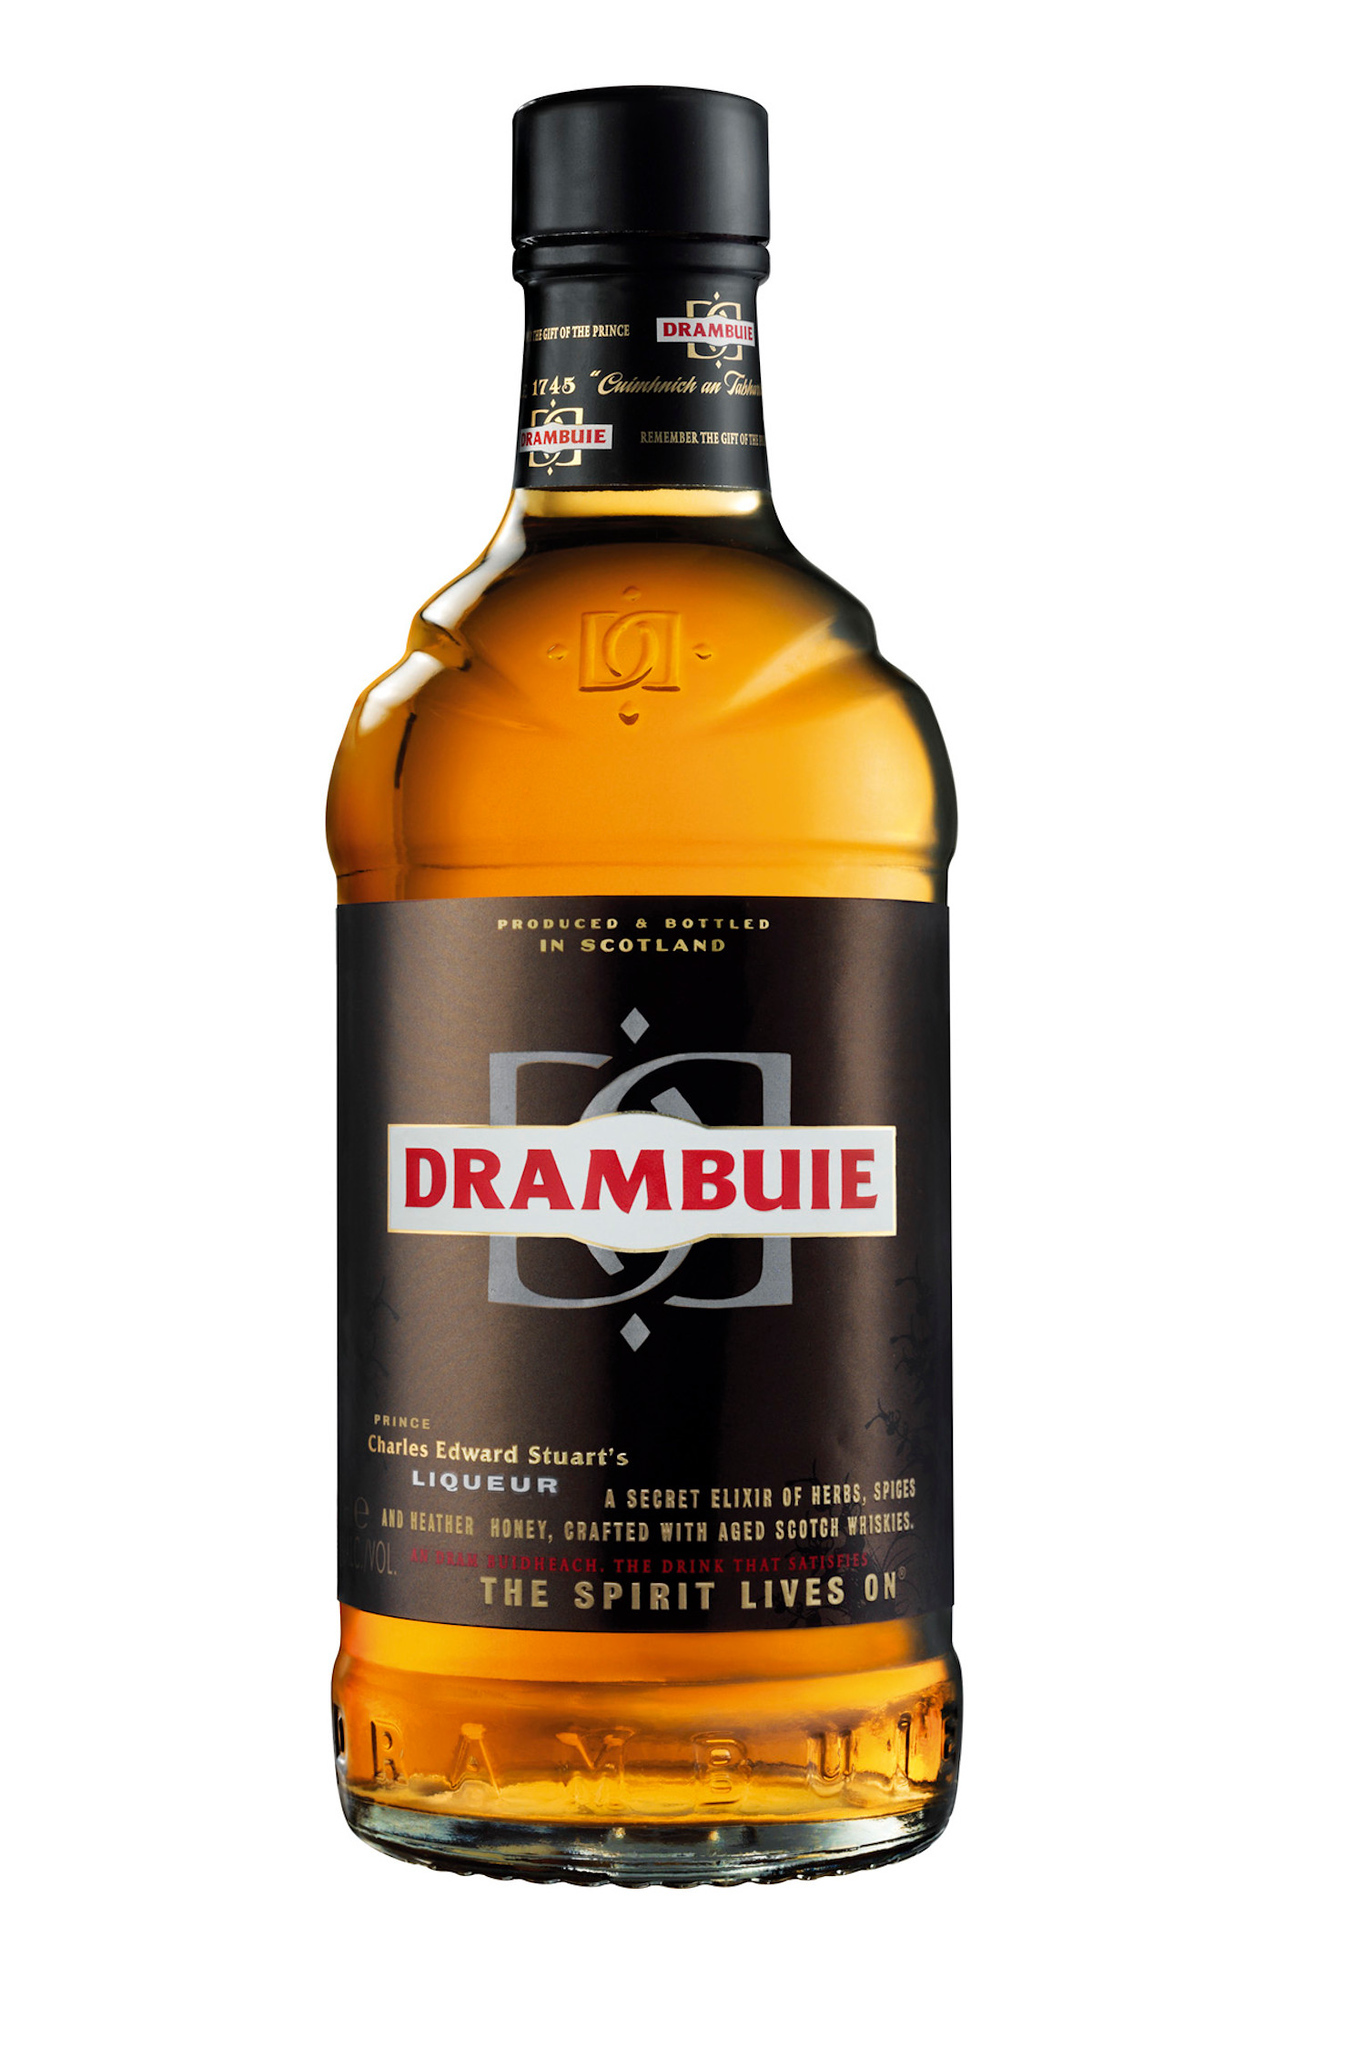 Drambuie is a liqueur that has been commercially produced in Edinburgh since the early 20th century. This drink is made from Scotch, herbs, honey, and spices.